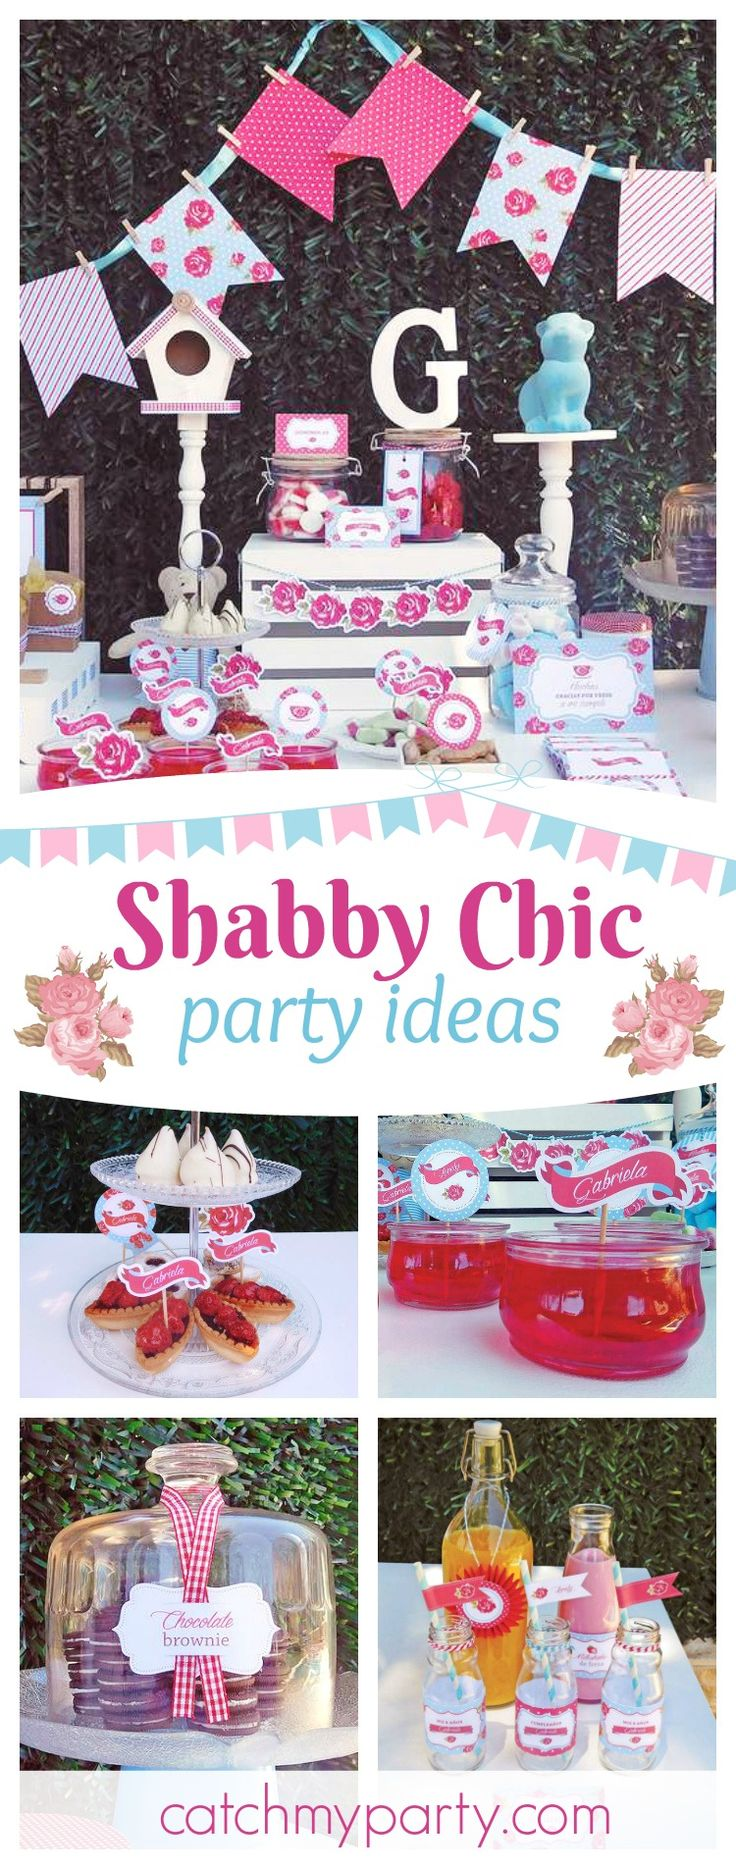 Take a look at this gorgeous Shabby Chic birthday party! The printables are adorable!! See more party ideas and share yours at CatchMyParty.com